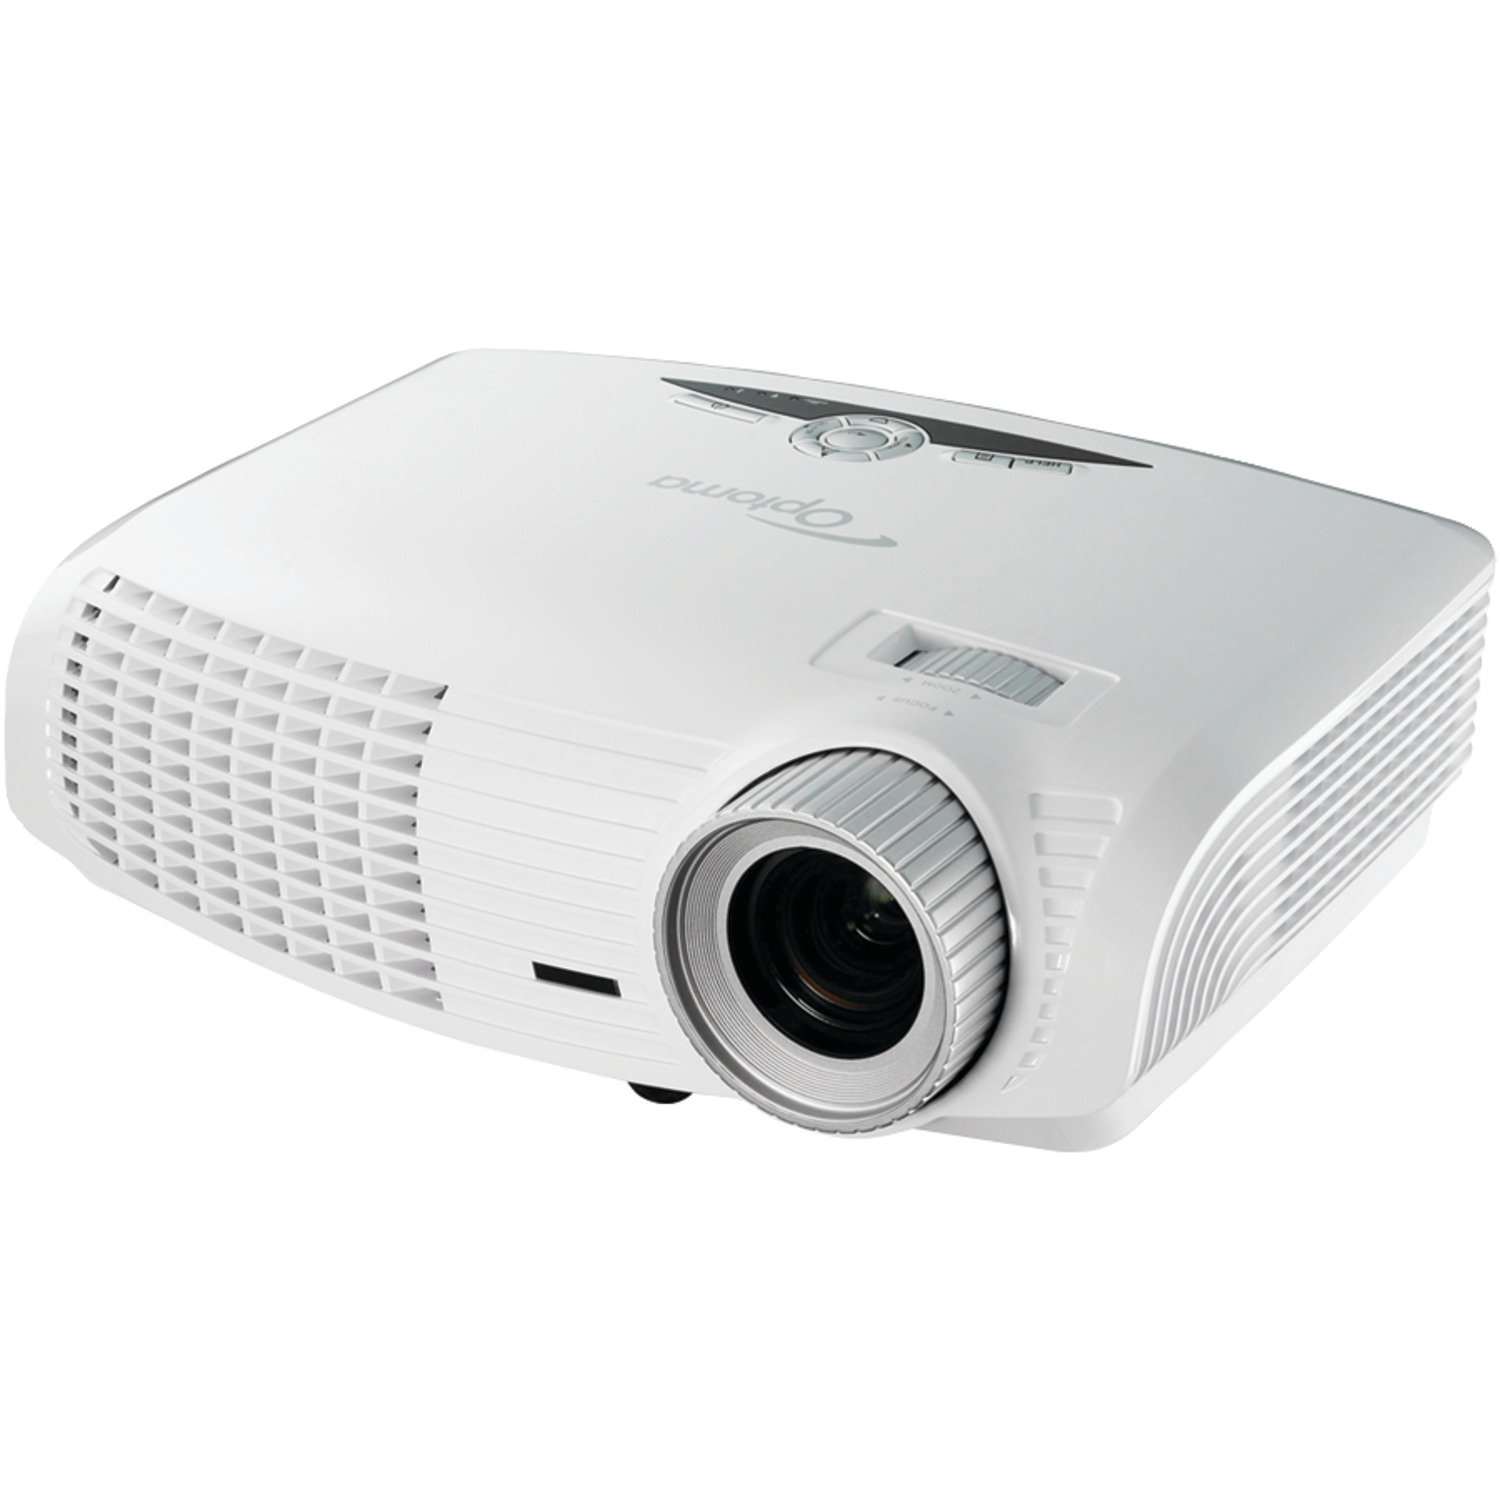 optoma hd25lv whd hd25 lv 1080p home theater projector with wireless transmit ebay